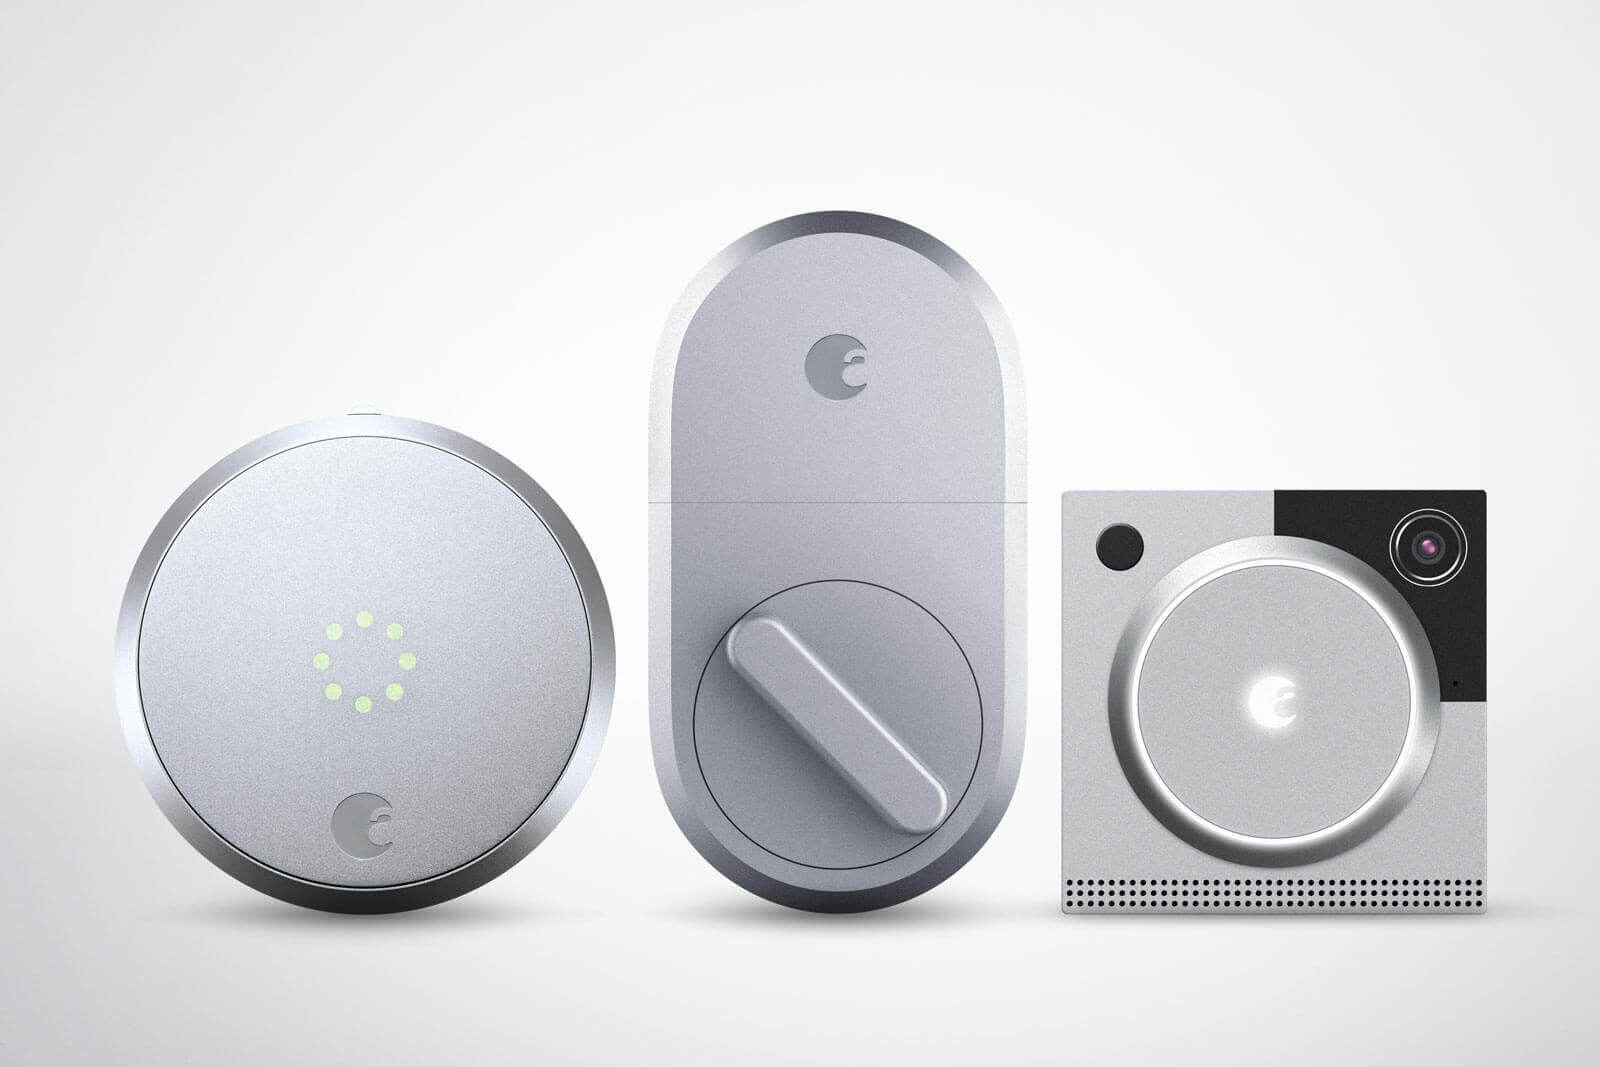 Everything You Need to Know About Installing and Using Smart Locks